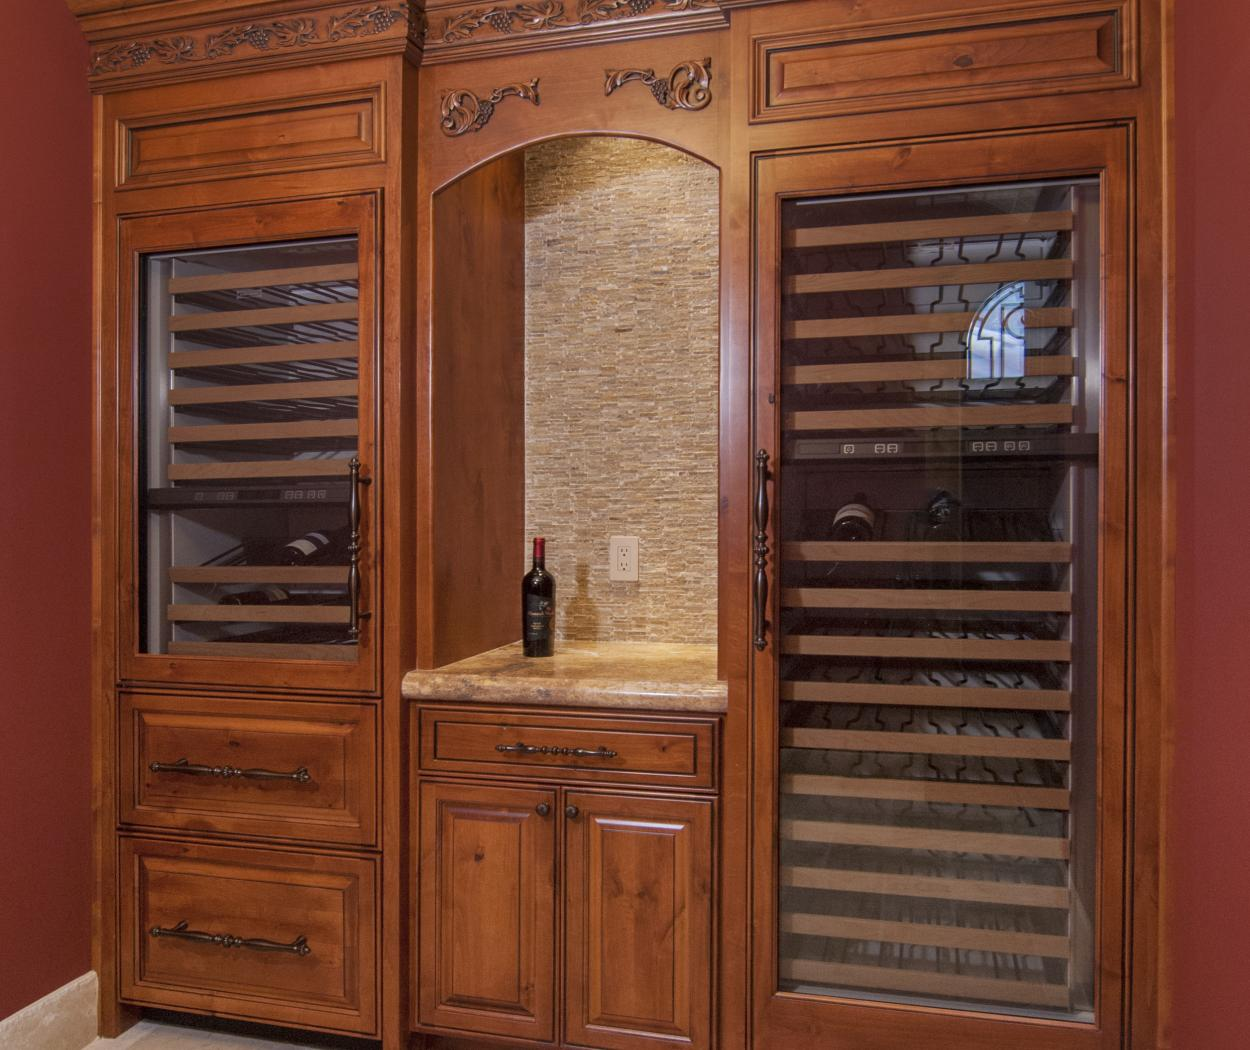 Traditional Stained, Knotty Alder Wine Bar with Decorative Molding, Two Wine Cellars and Oil Rubbed Bronze Hardware